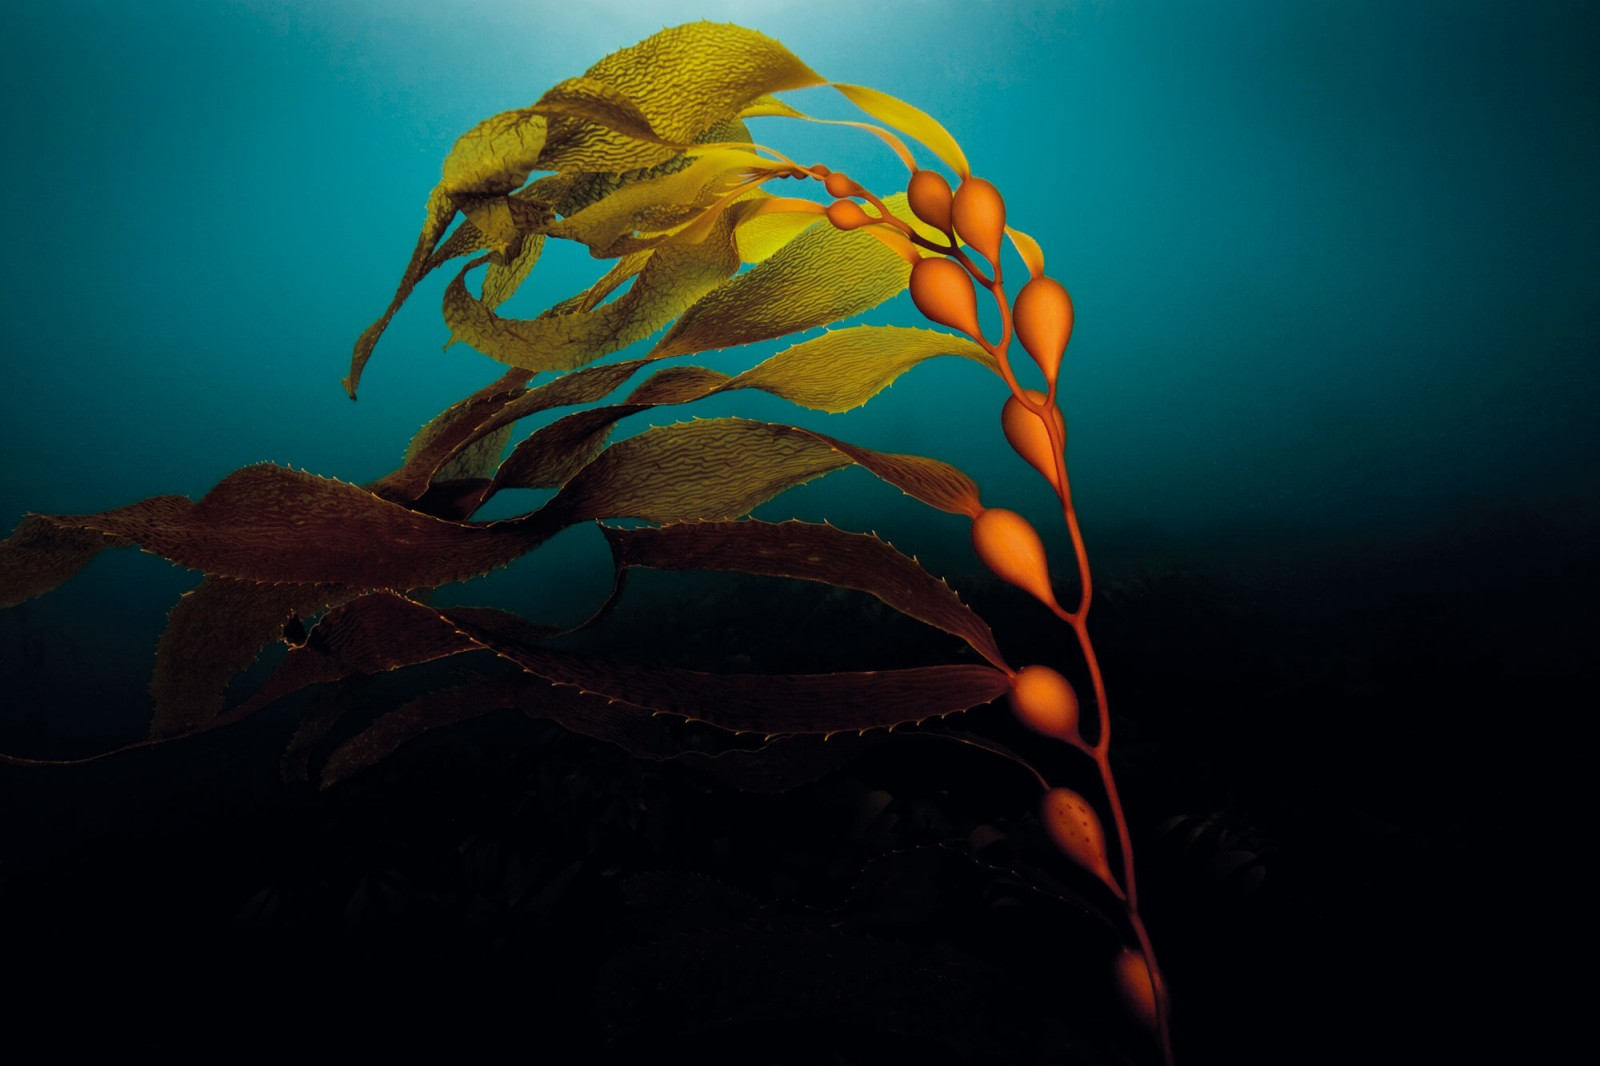 Icon of southern seas, the giant bladder kelp Macrocystis pyrifera bends to the sea current at New Zealand's second largest marine reserve, created in 2003 around the subantarctic Auckland Islands. The species was introduced to the Quota Management System in 2010 so that it could be commercially harvested for processing into pharmaceuticals, nutritional supplements, garden fertiliser and other products. Marine scientists protested the move, saying that harvesting of such a keystone species was akin to logging native forest.